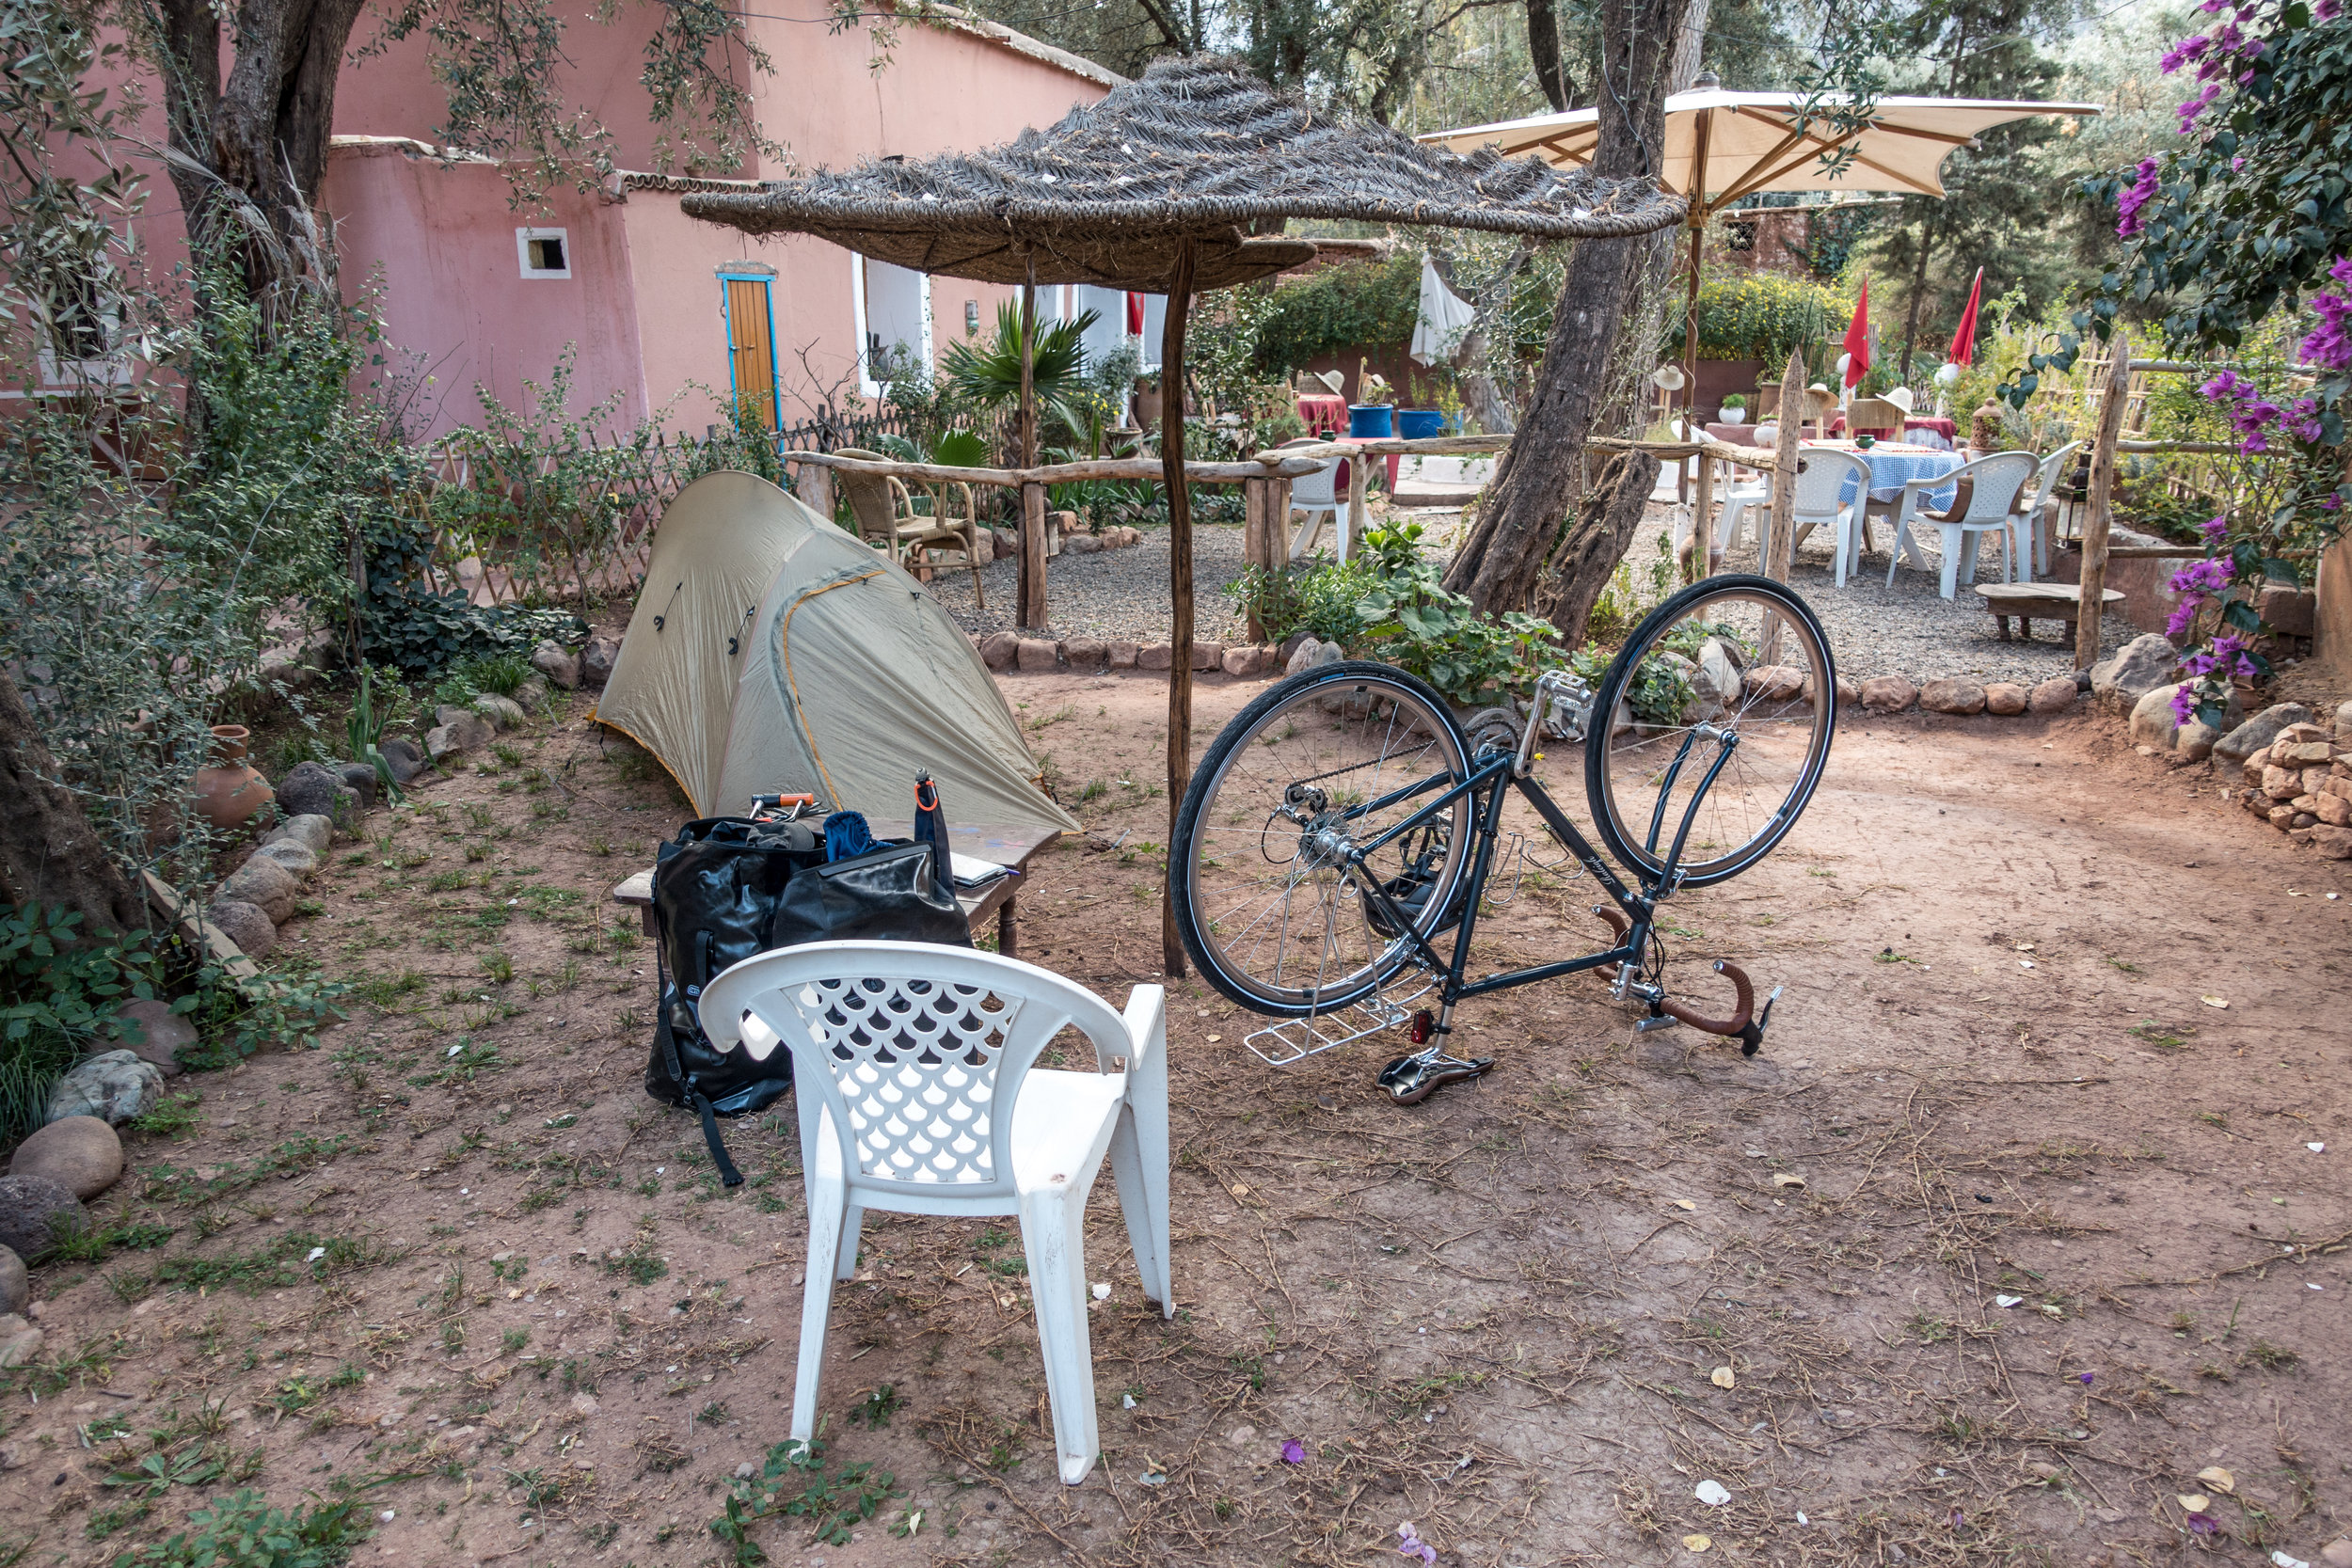 Camping in front of a bed-and-breakfast for about 50 dirham (5USD).